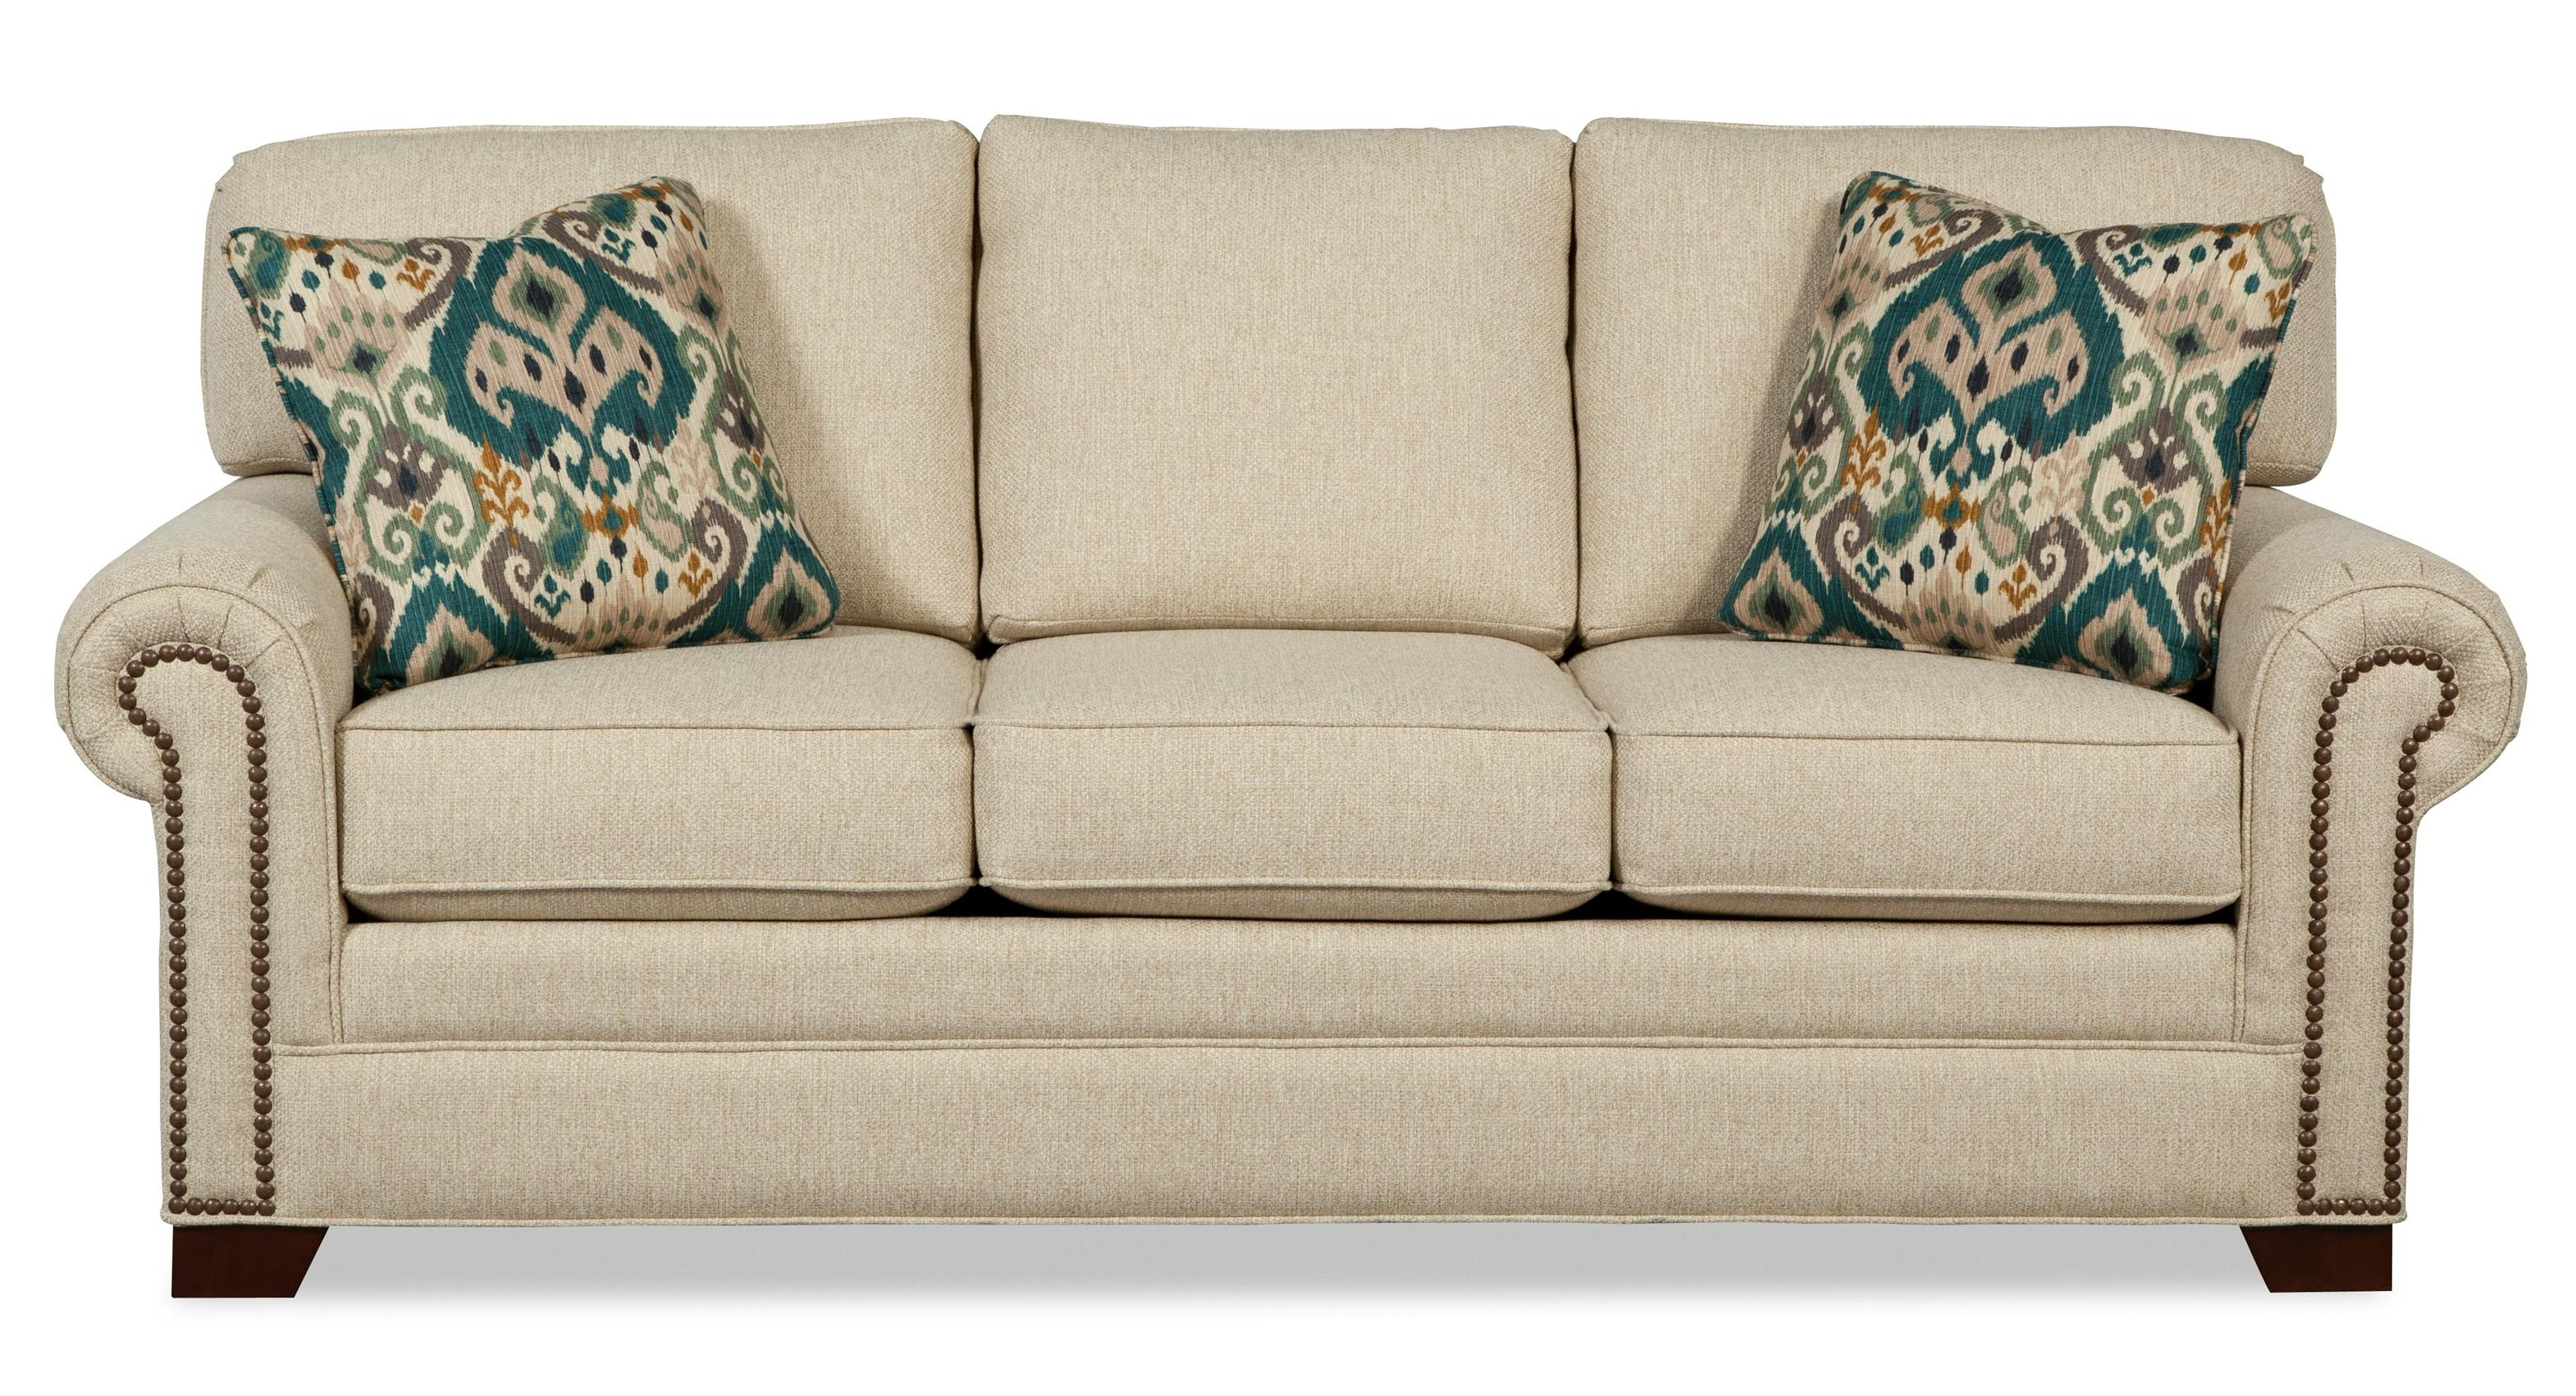 Transitional Sleeper Sofa With Brass Nailheads And Memory Foam Mattress